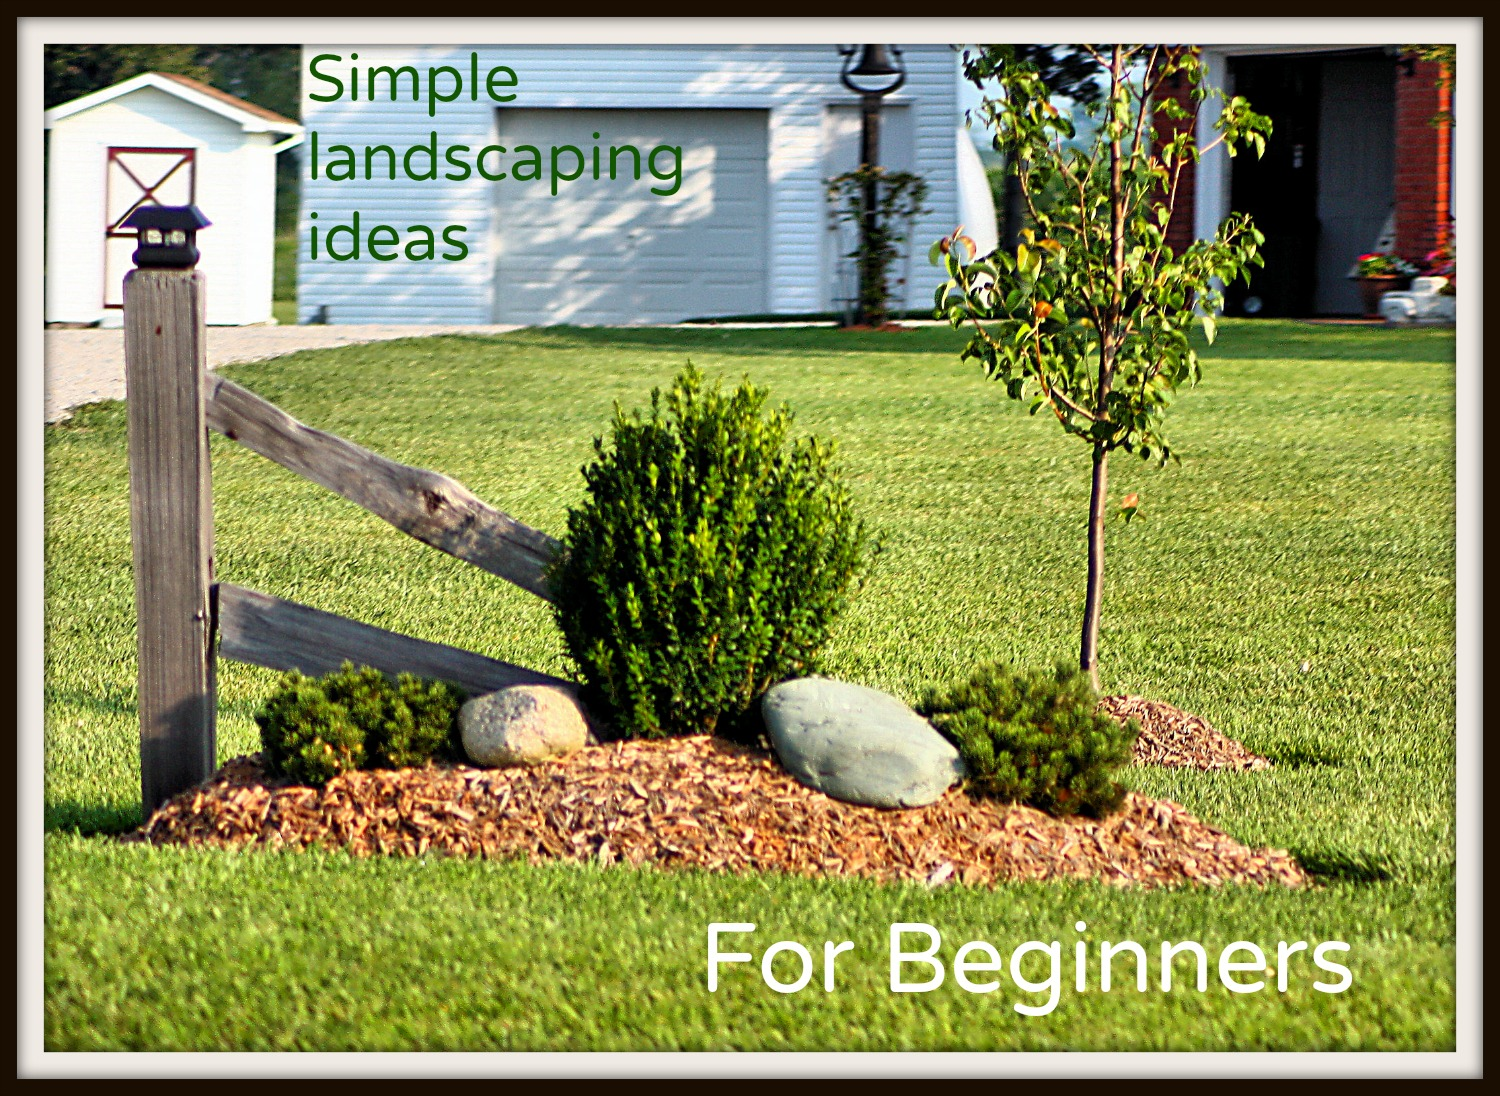 Simple landscaping ideas for beginners frador for Basic landscaping